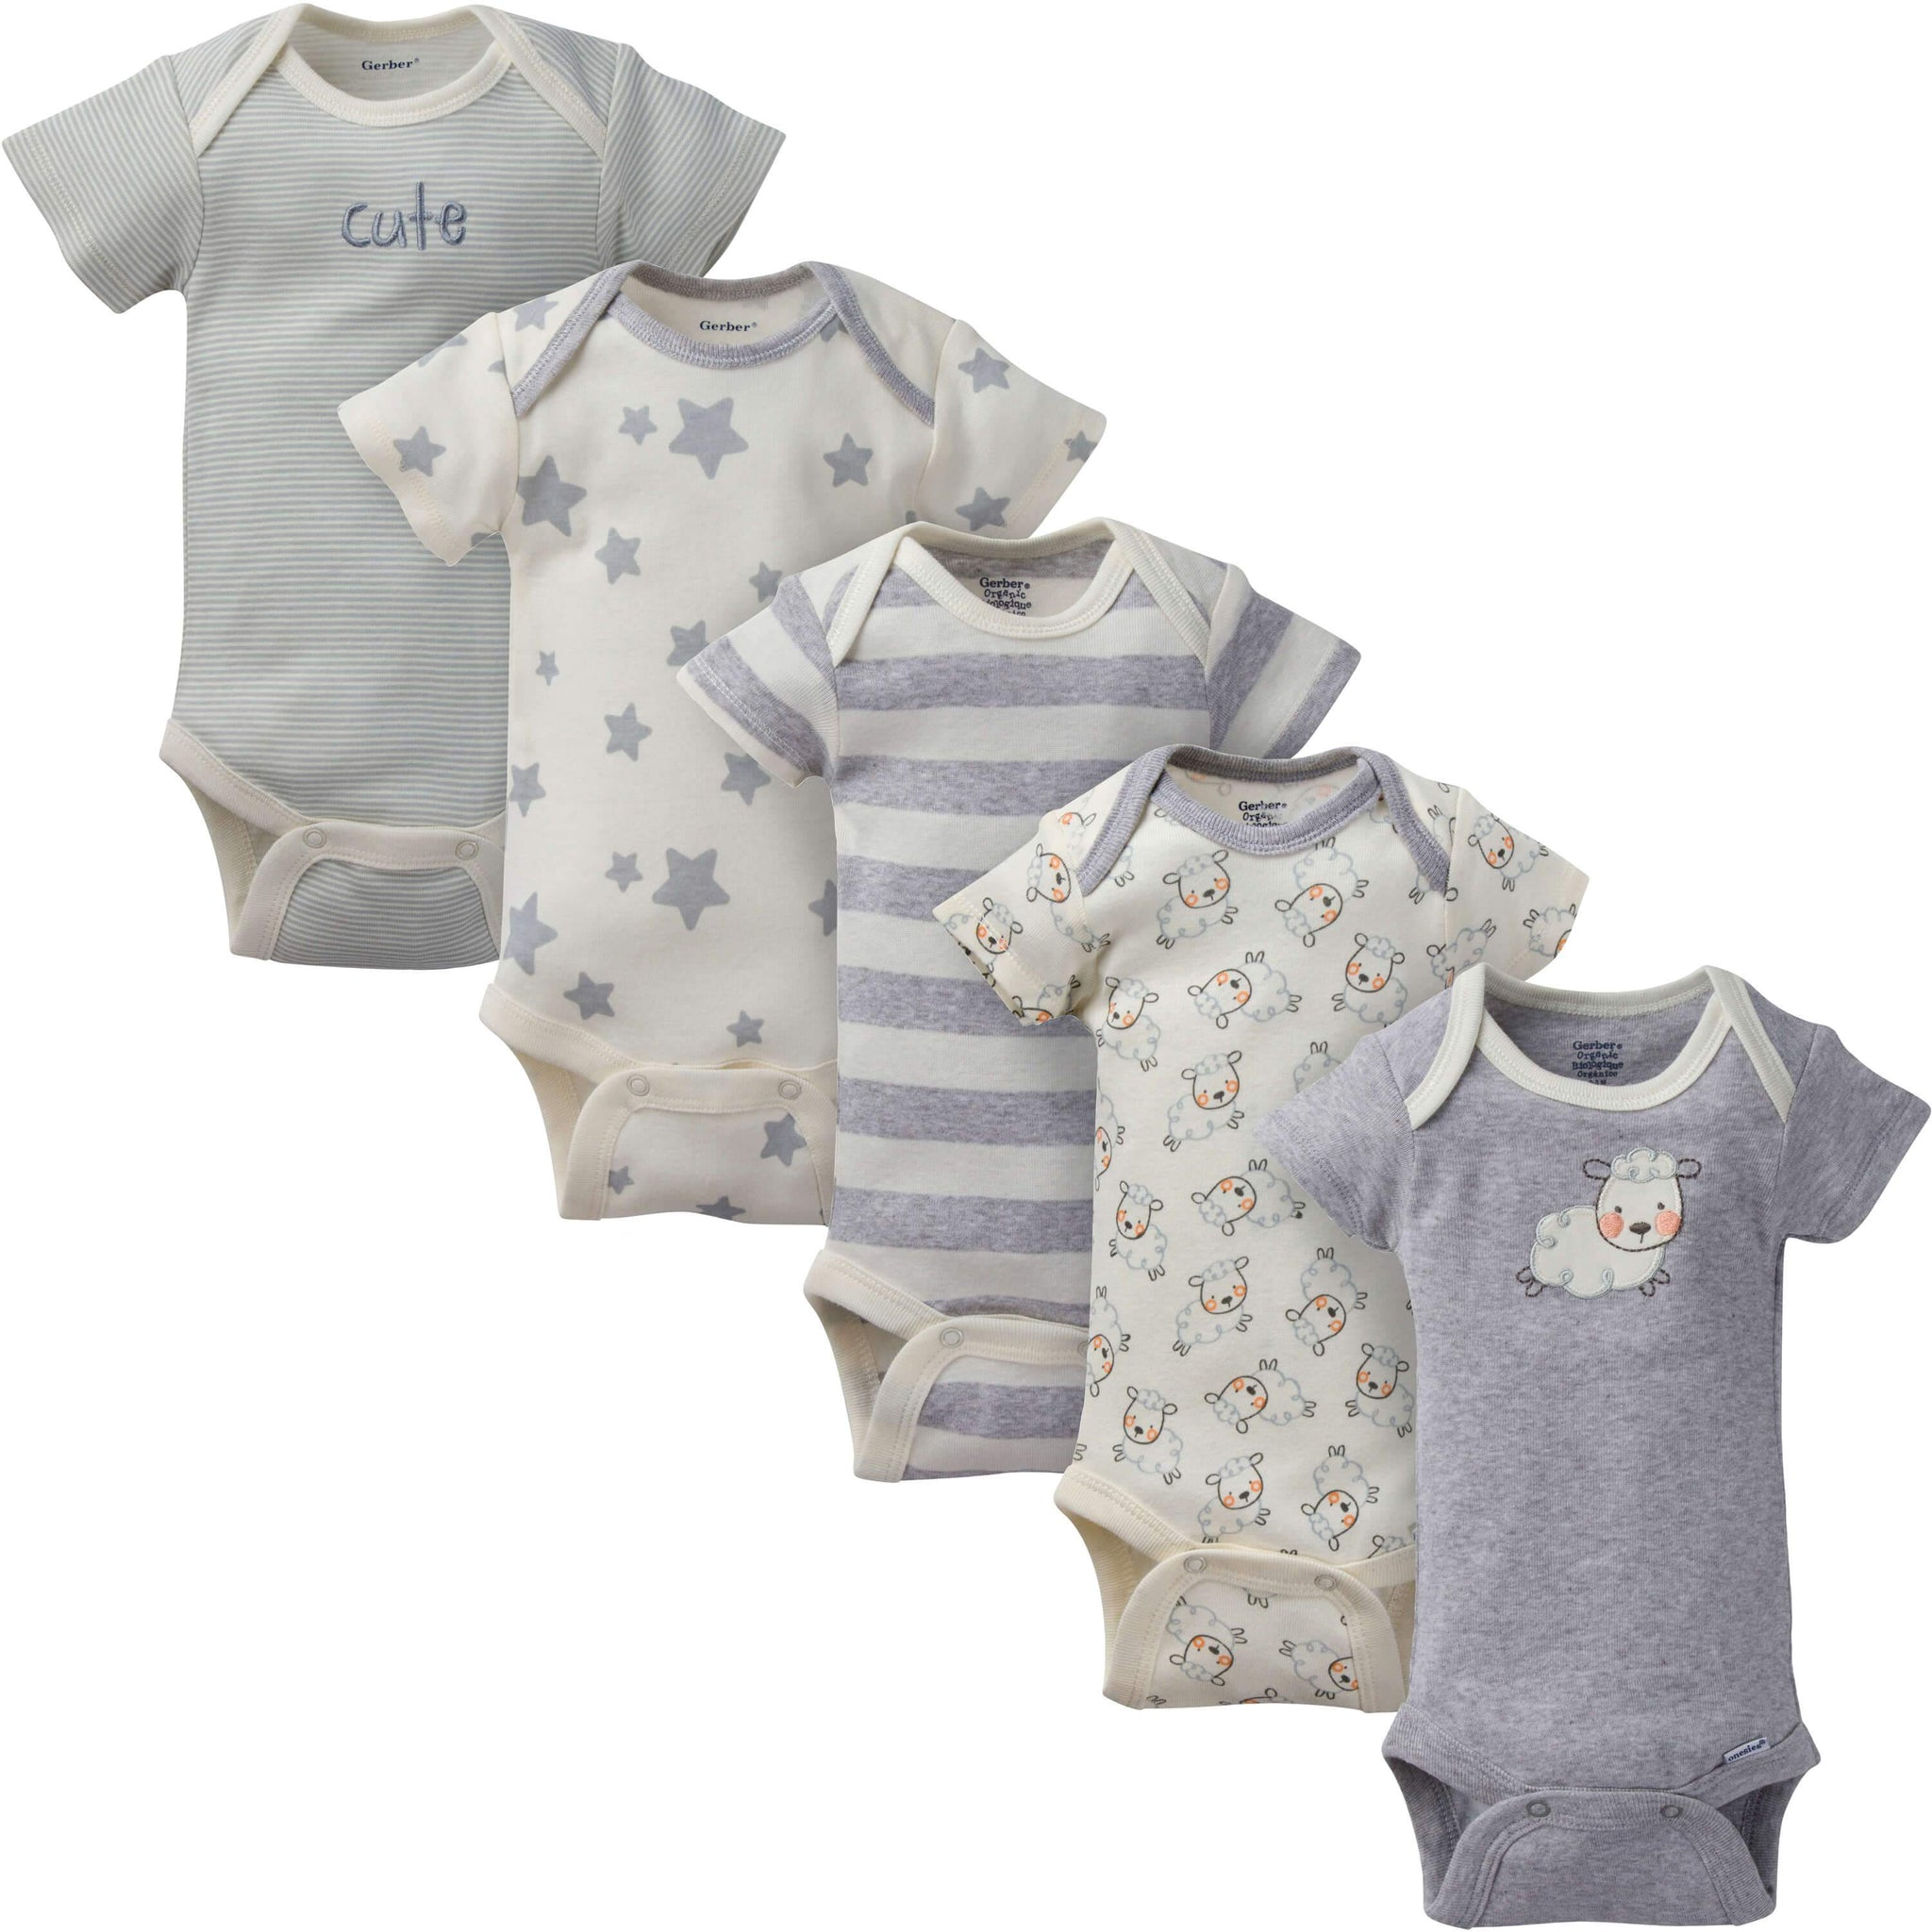 5-Pack Neutral Sheep Organic Short-Sleeve Onesies Bodysuit